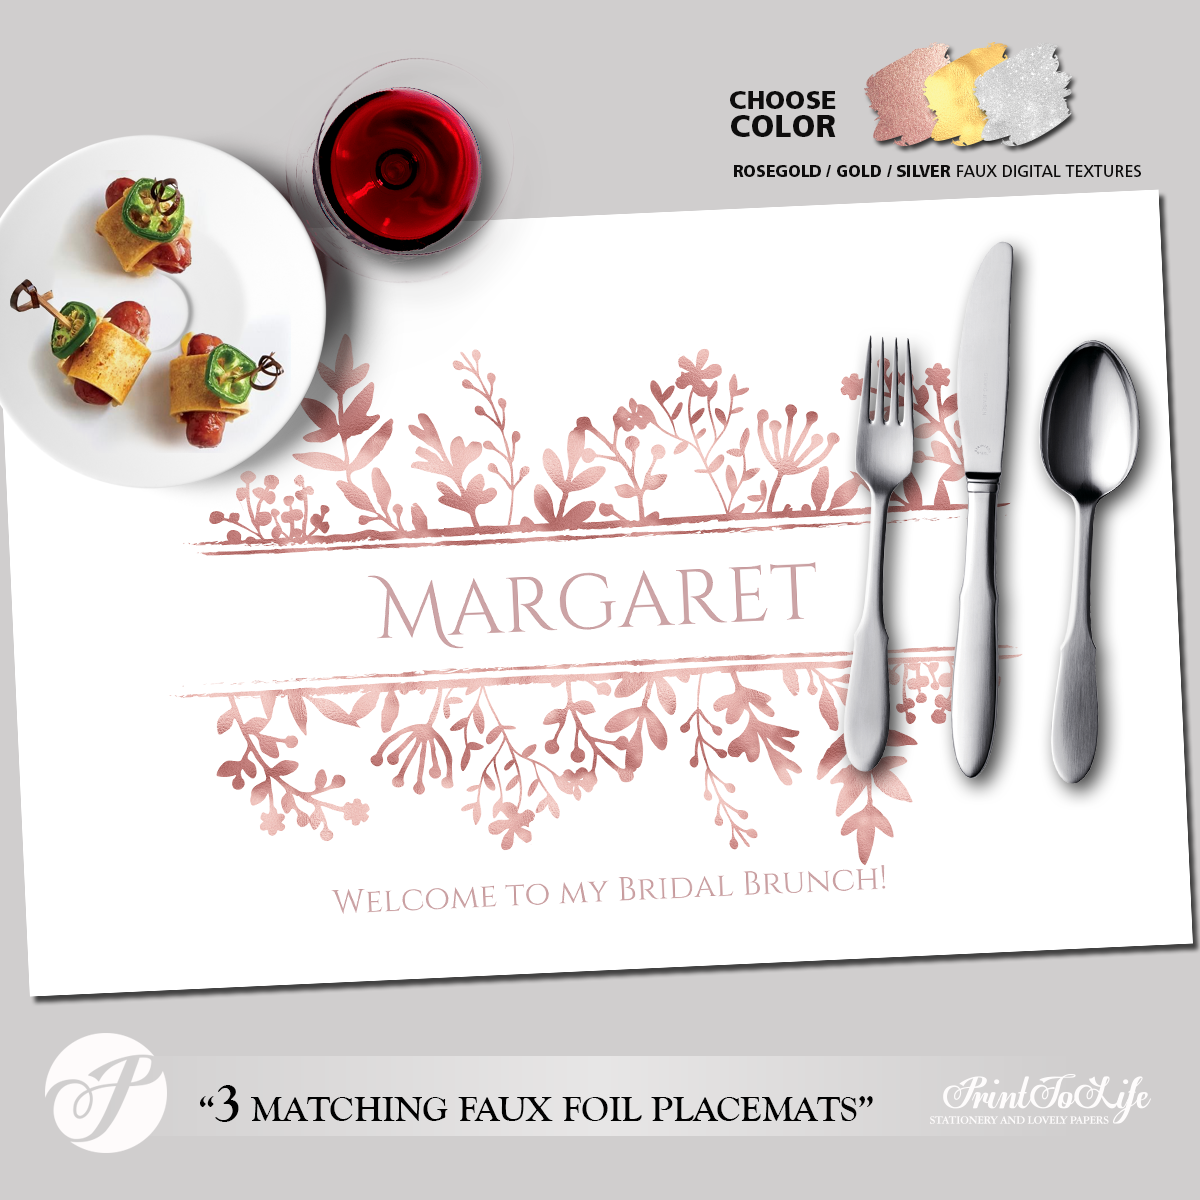 photo regarding Printable Placemats referred to as Printable Placemat Template, Customized for Bridal Showers and Dinners with 3 Luxurious Textures.